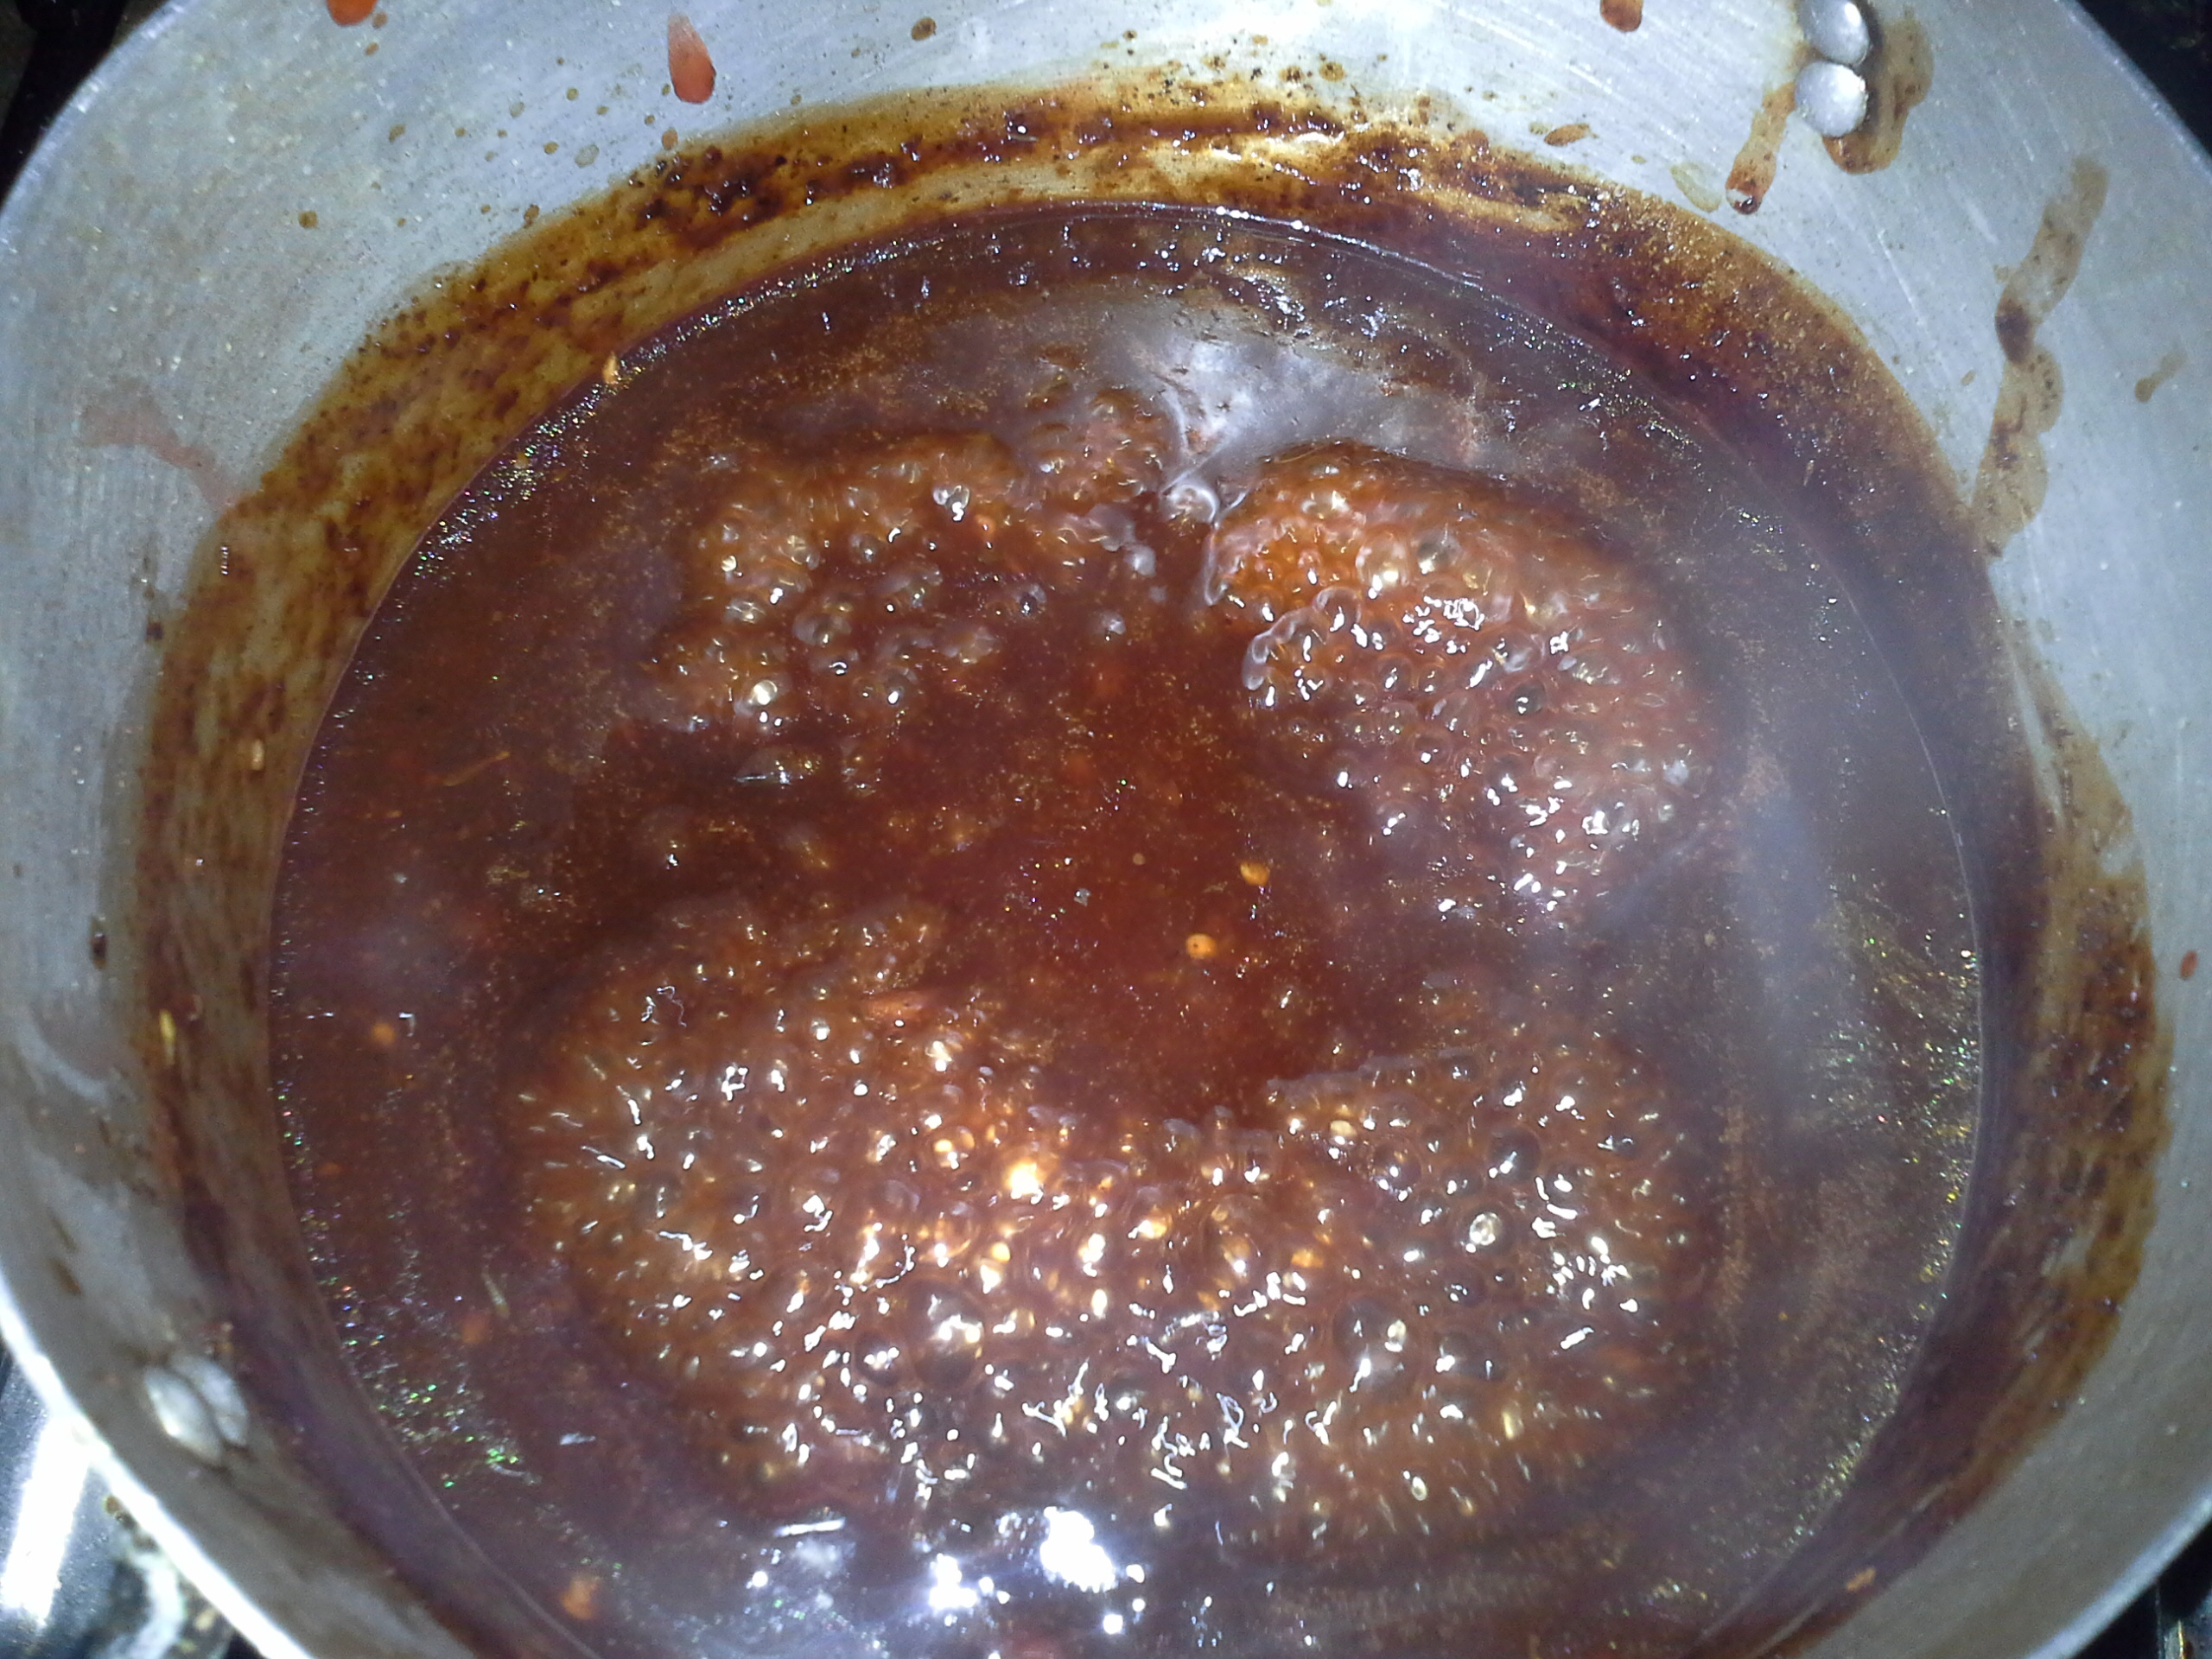 Let the marinade boil vigorously for 5 minutes, then add 5 tablespoons of ketchup and extra dry Cameroon pepper if you wish